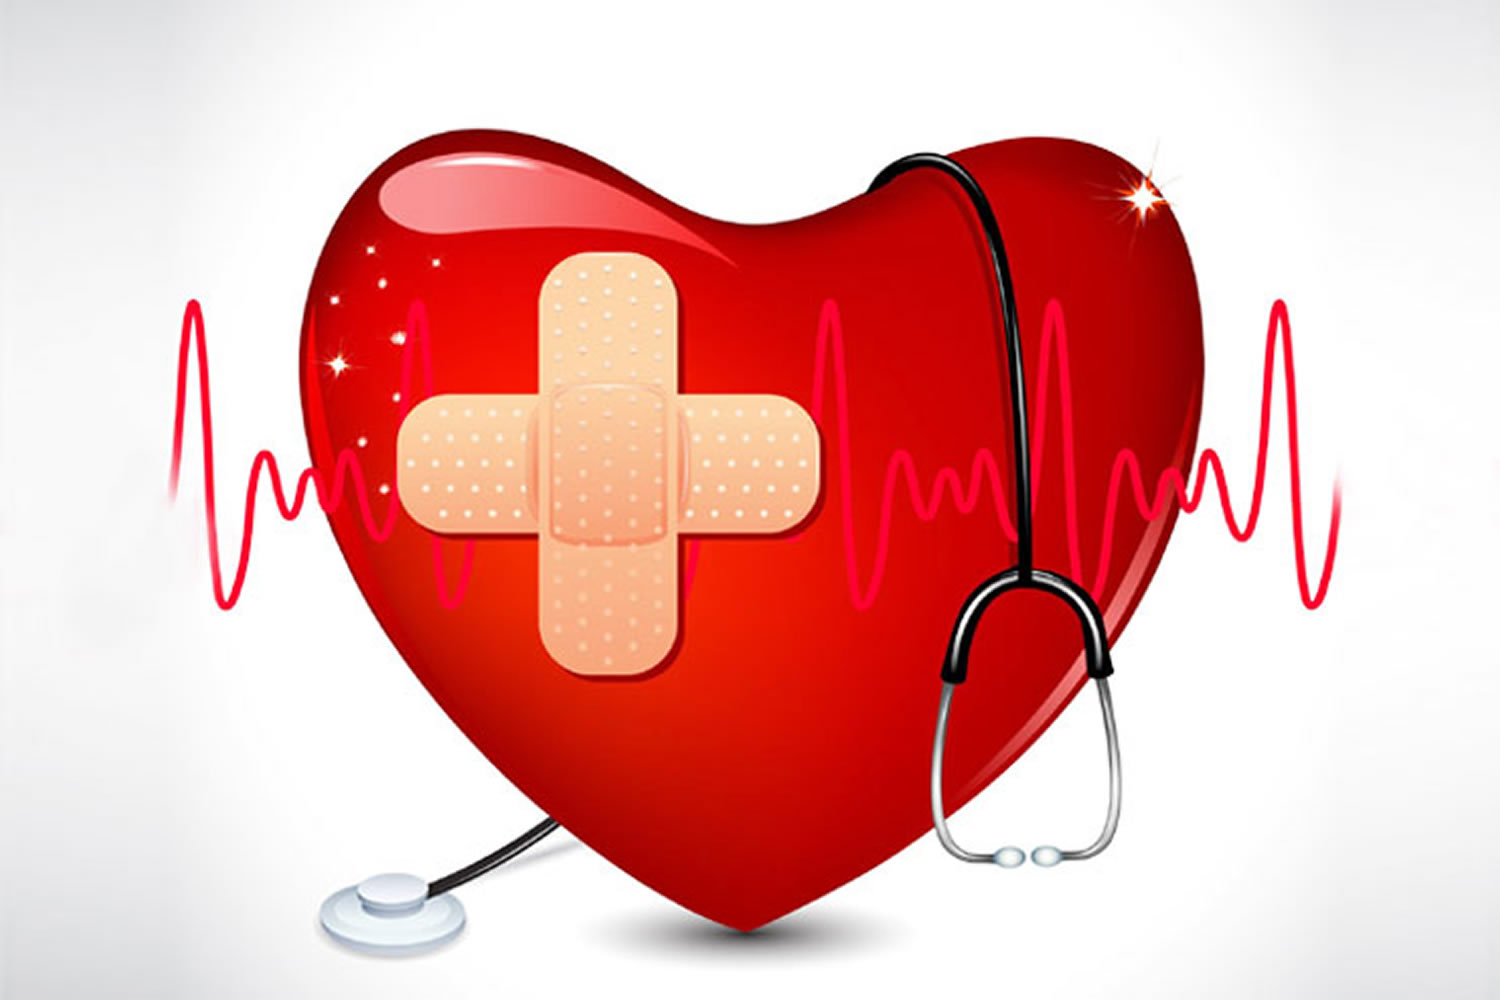 Treatment of the Heart Diseases